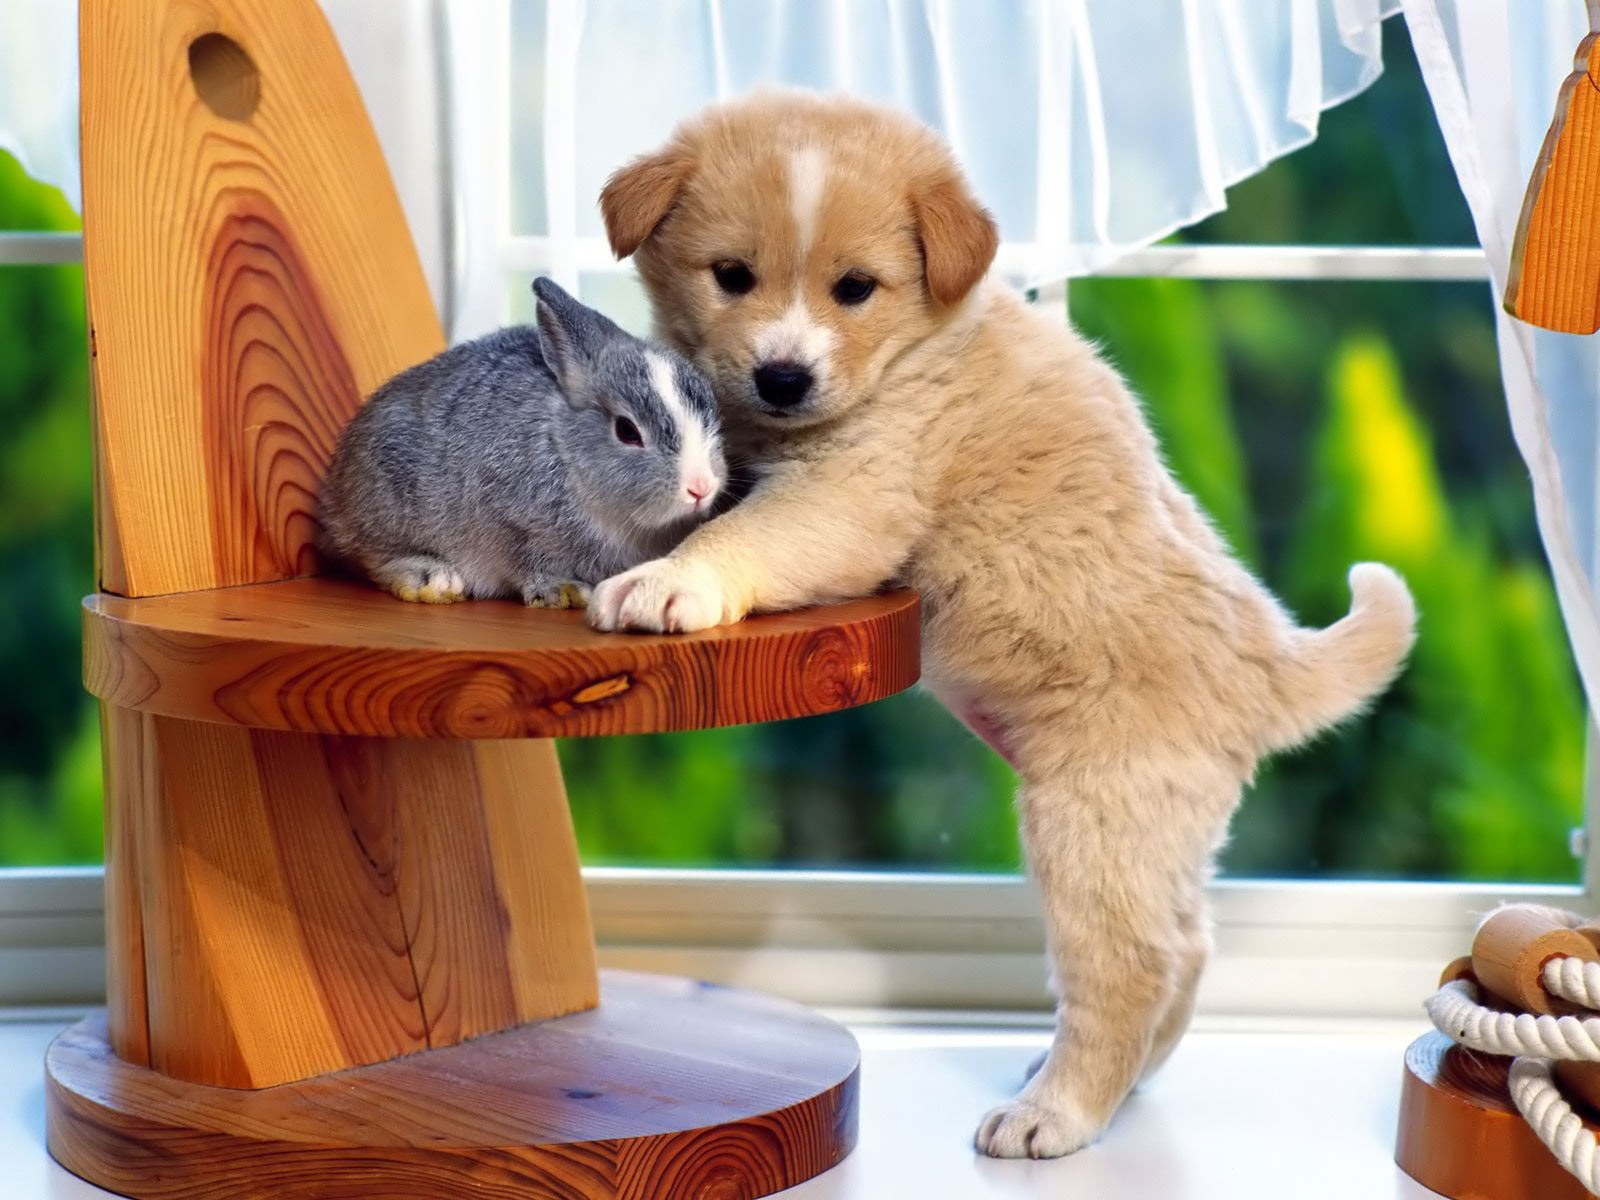 Puppy And The Bunny desktop wallpaper 1600x1200